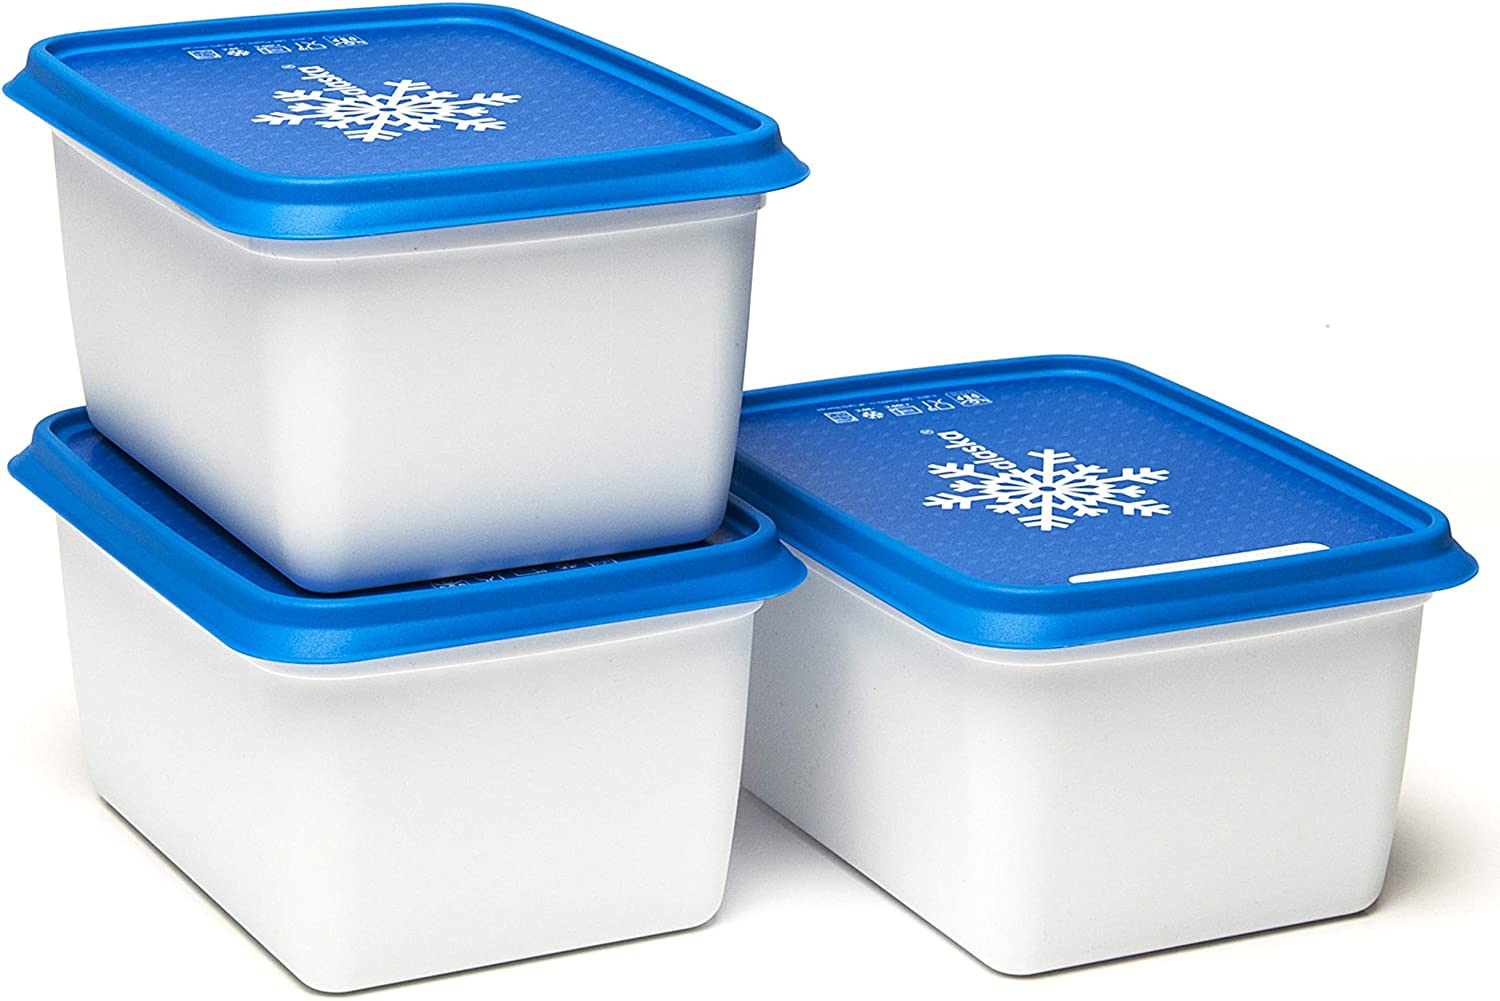 Amuse- Stackable and Unbreakable Alaska Commercial Grade Food Container set with Lid- Made in Europe (Set of 3-40 oz. each)